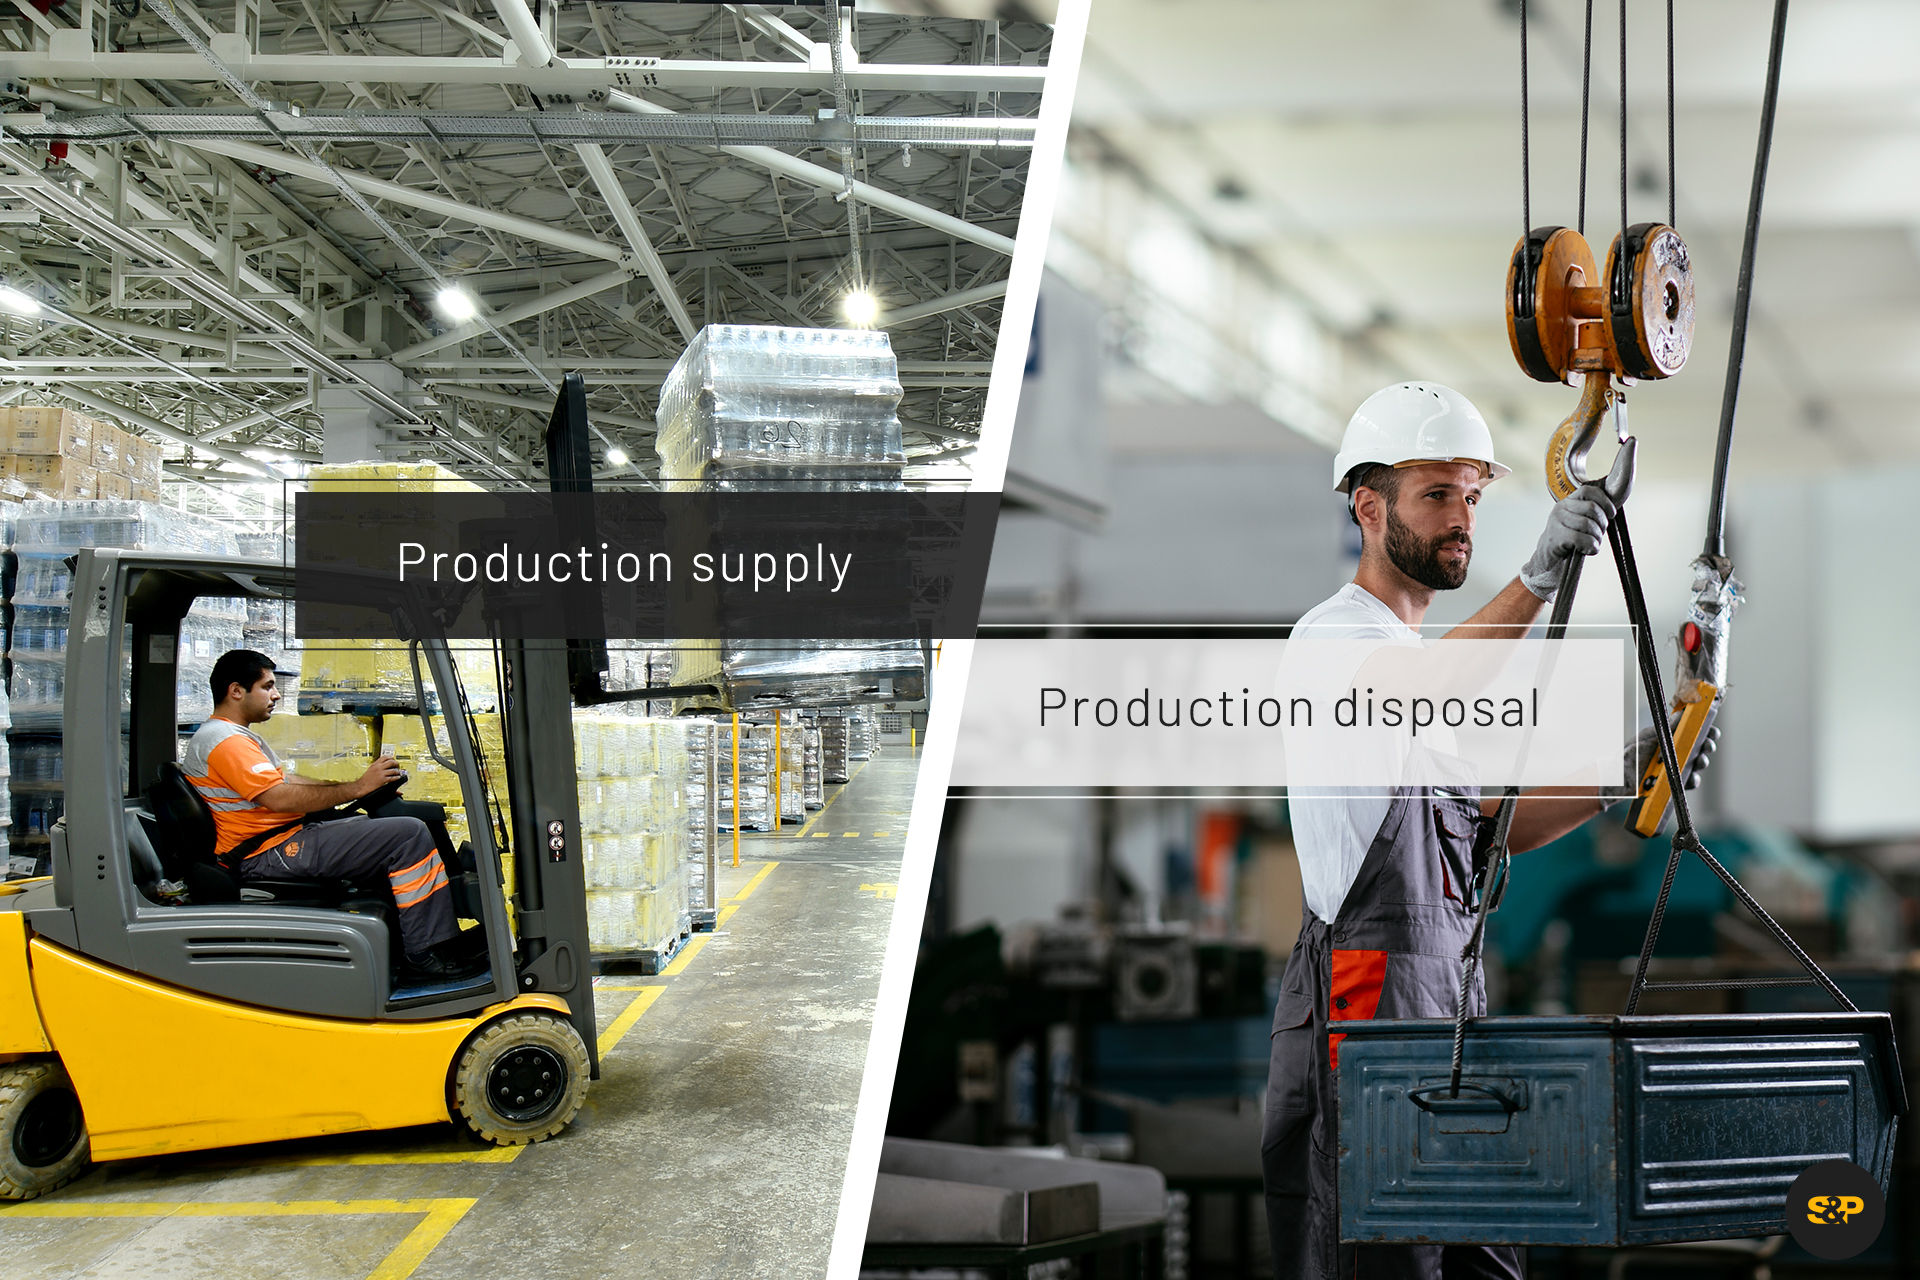 With a reliable production supply and disposal system, you can keep the material flow in the warehouse constantly running!